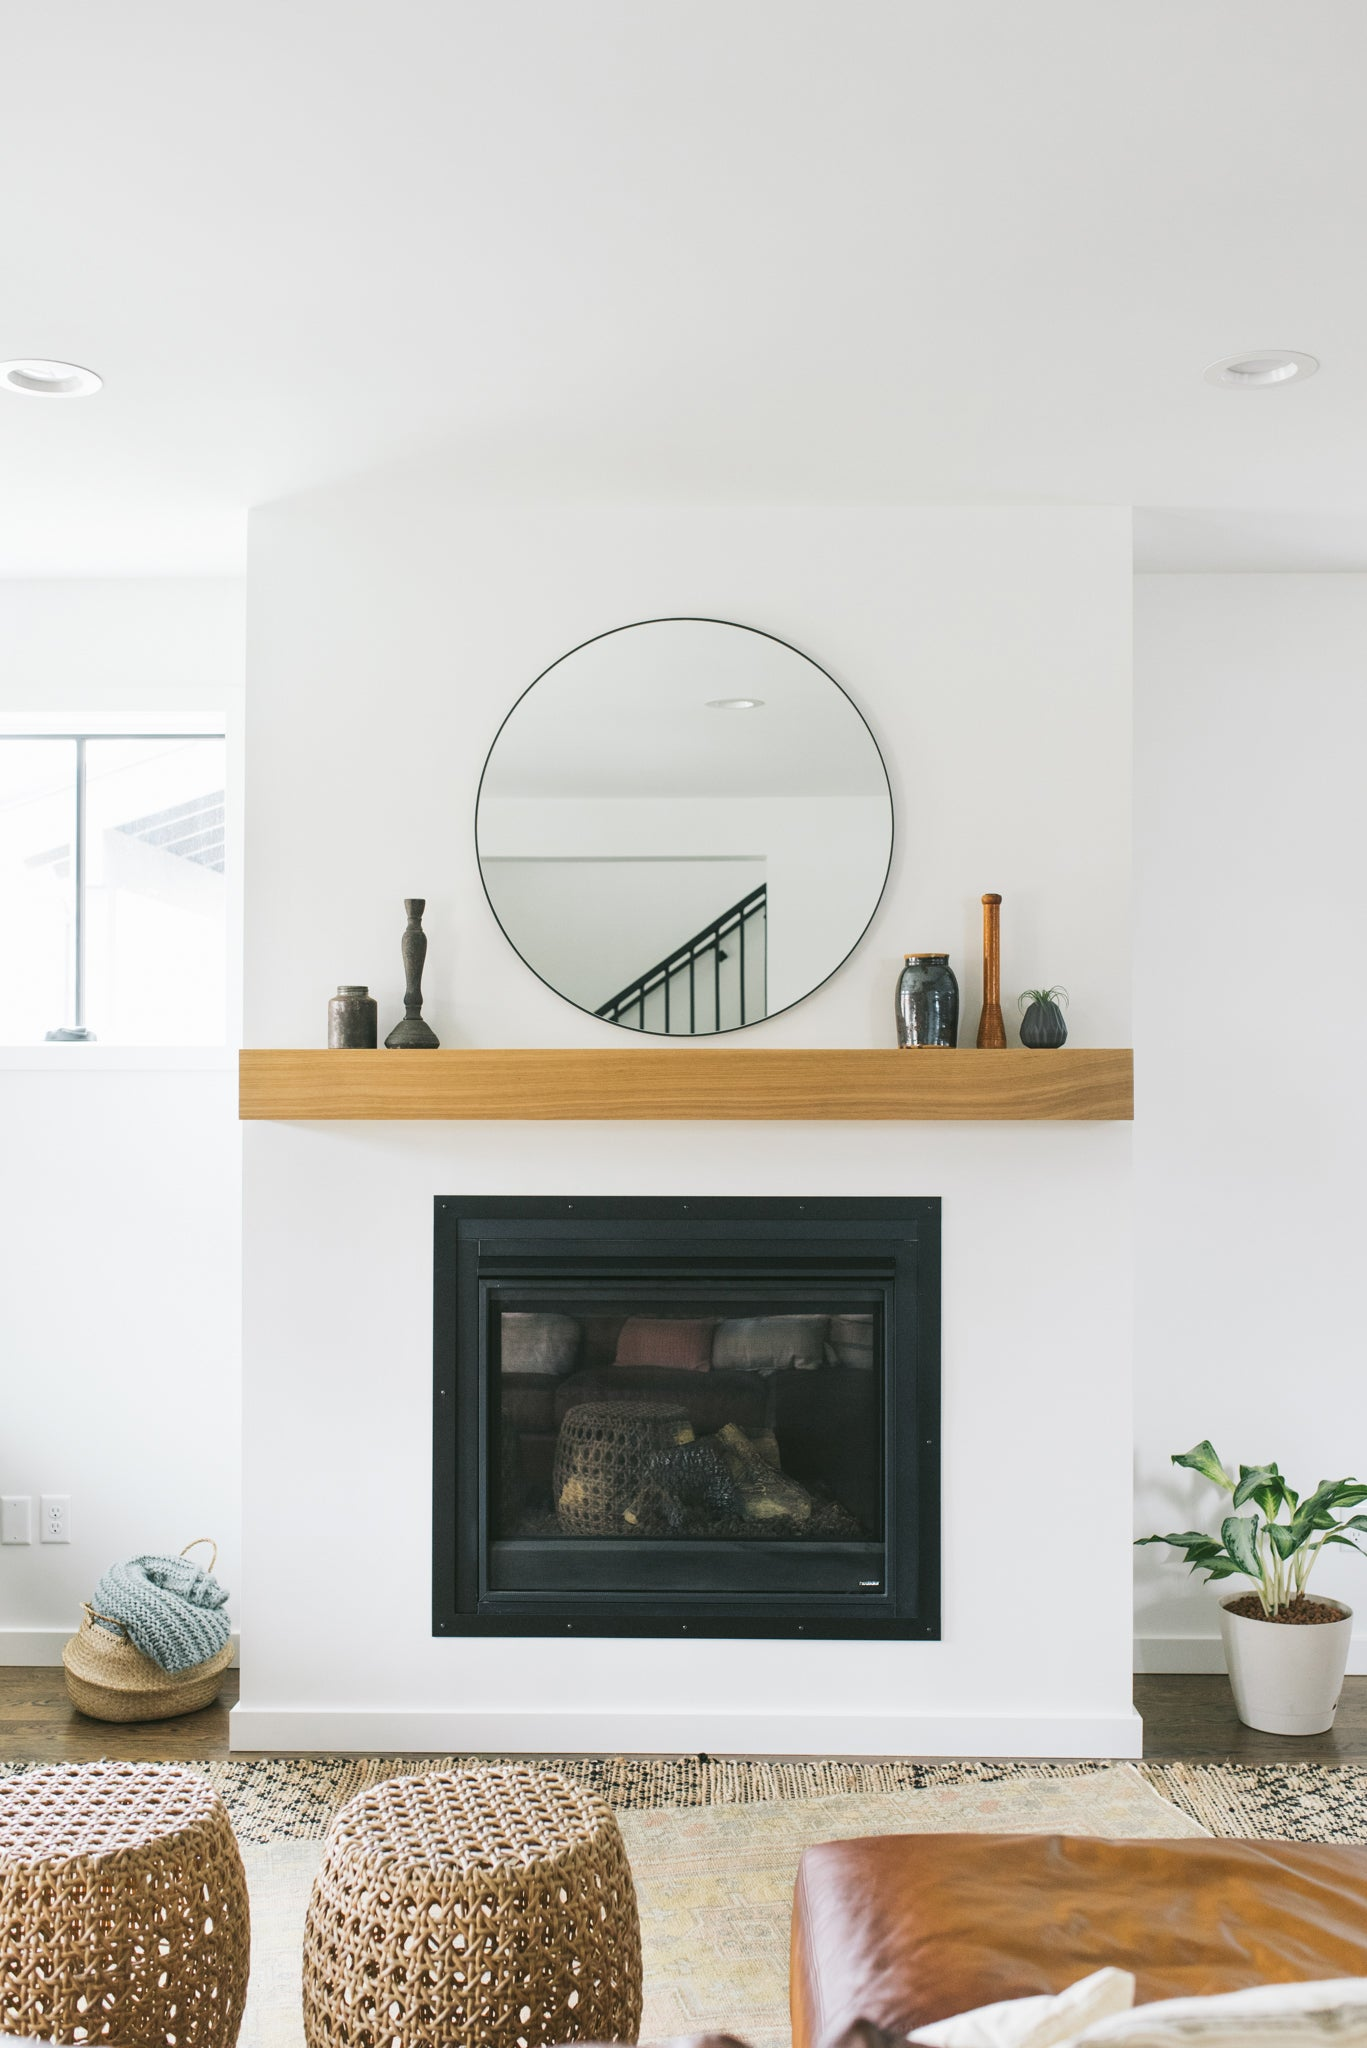 Minimalist contemporary fireplace in bright white with a birch mantel featuring small vintage finds.